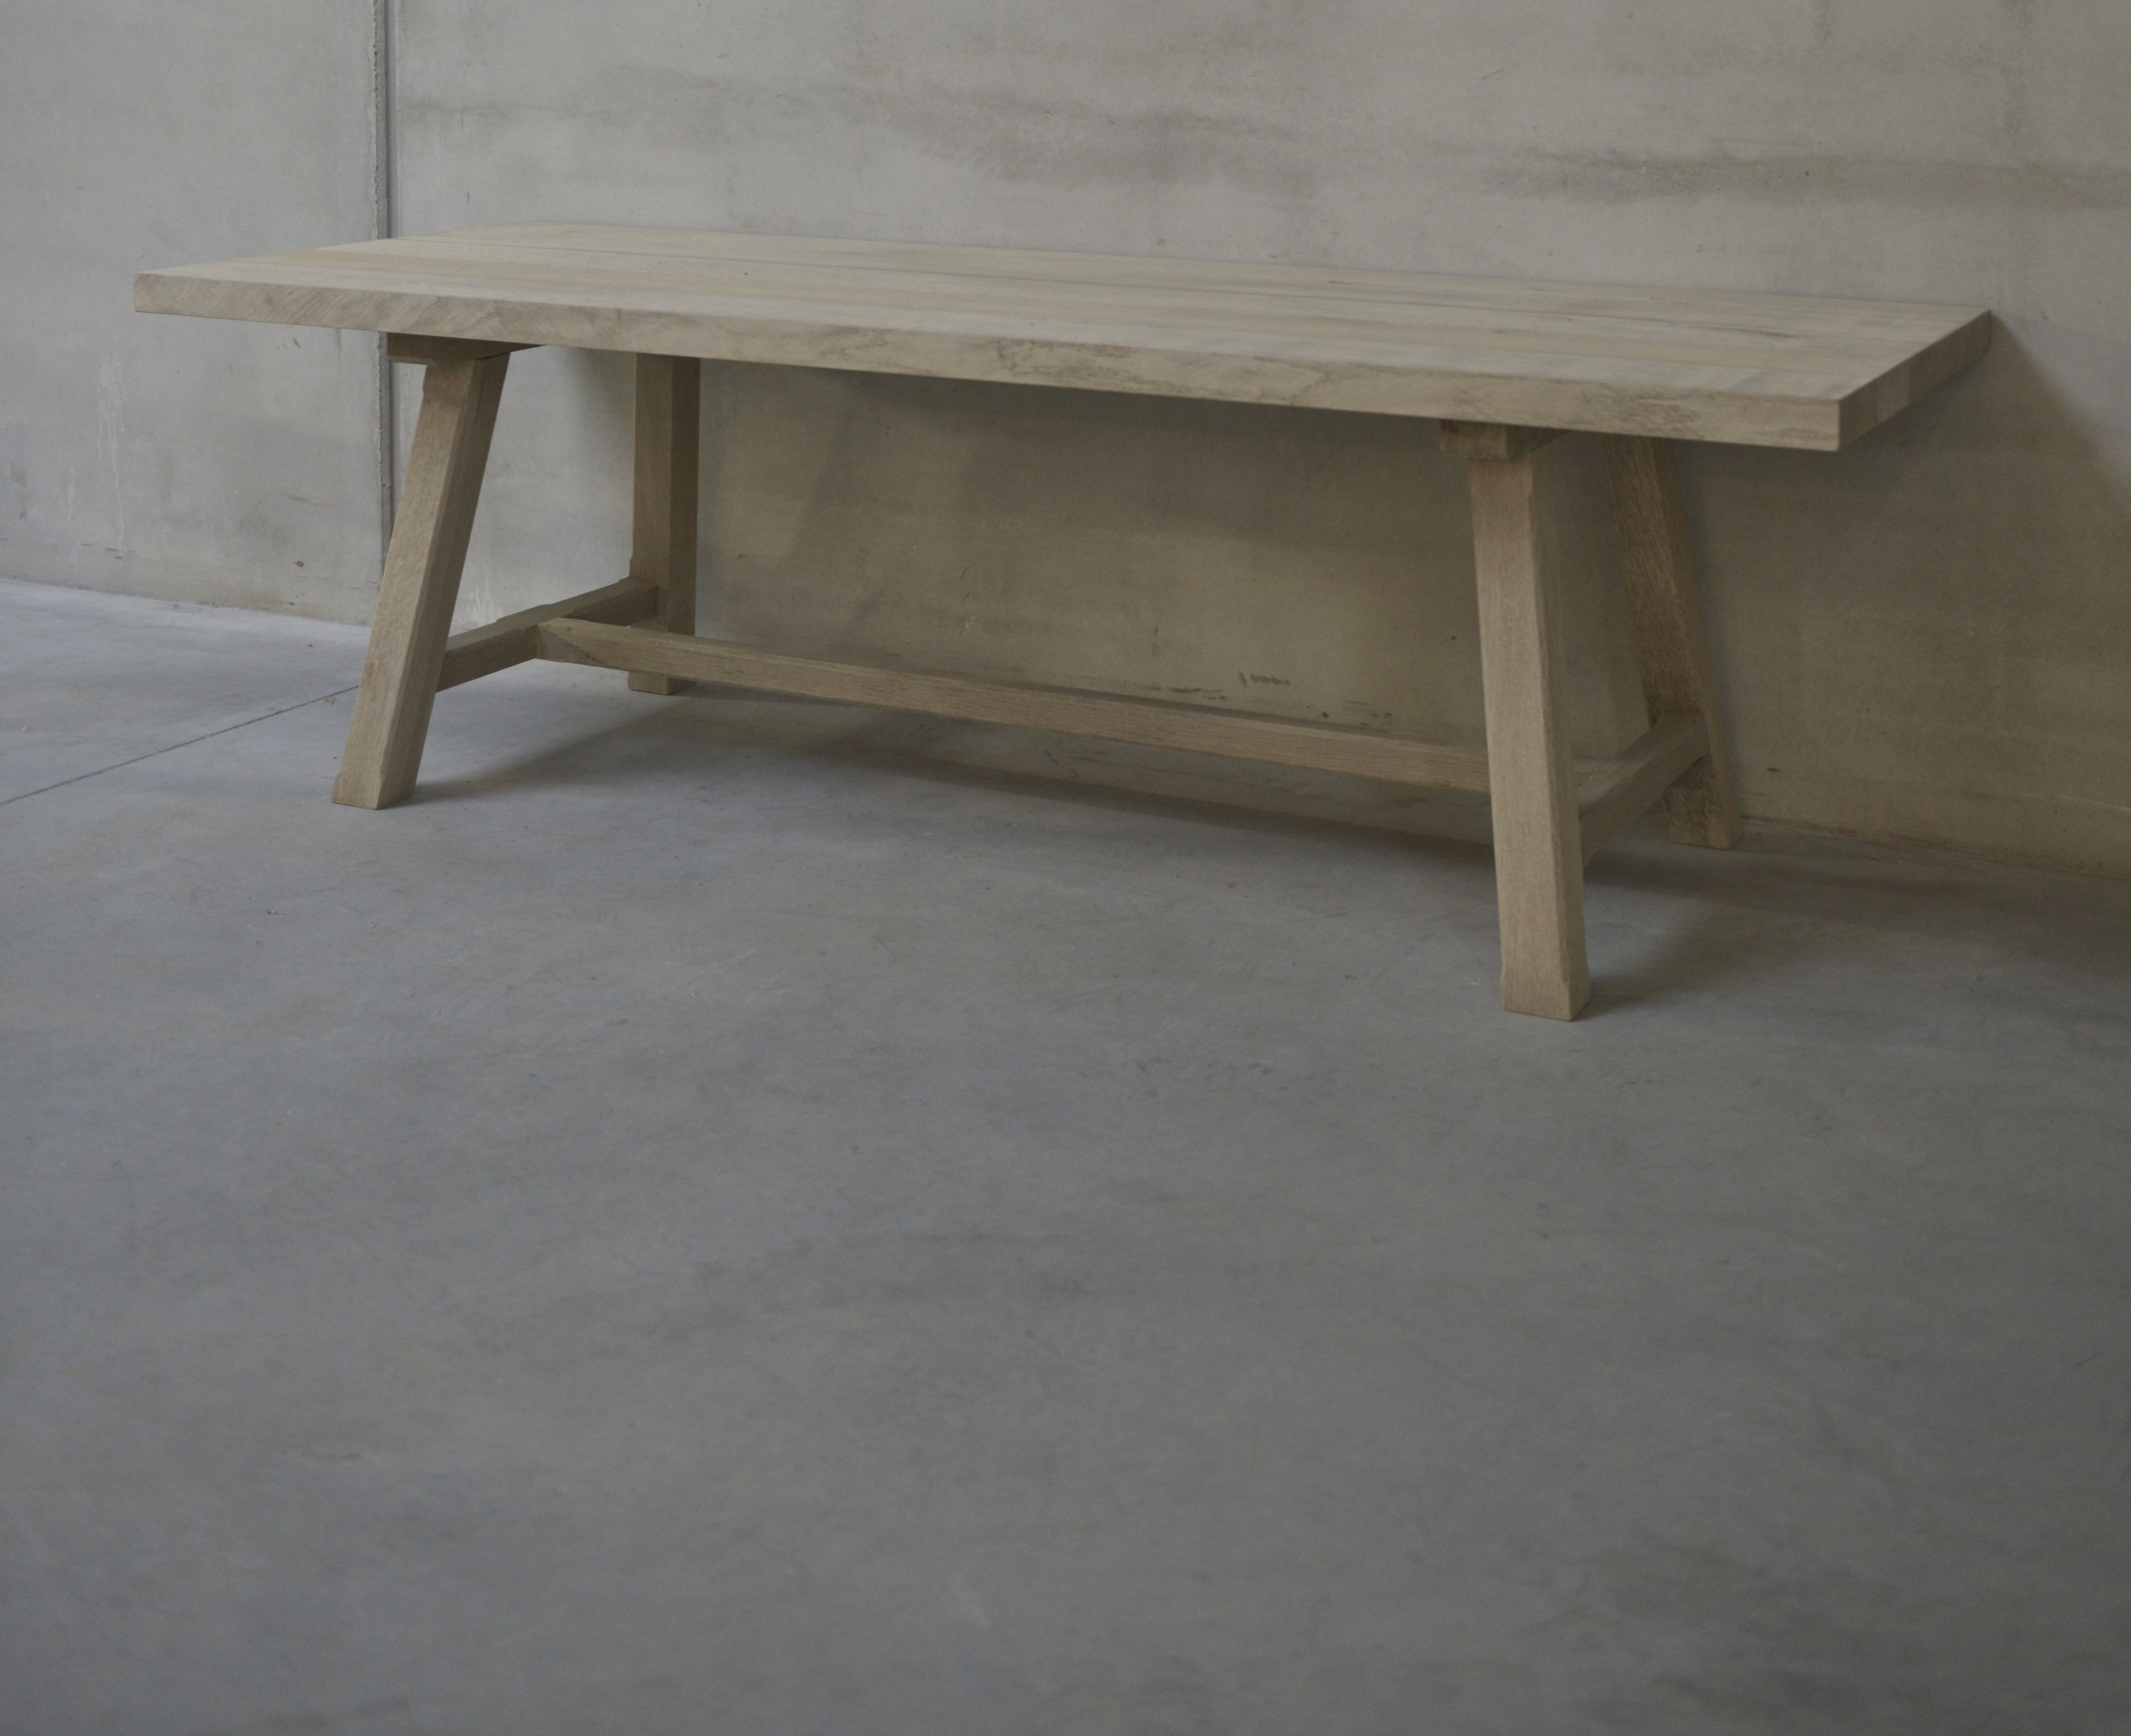 Exceptionnel Belgian Bleached Oak Dining Table Or Desk With Angled Legs